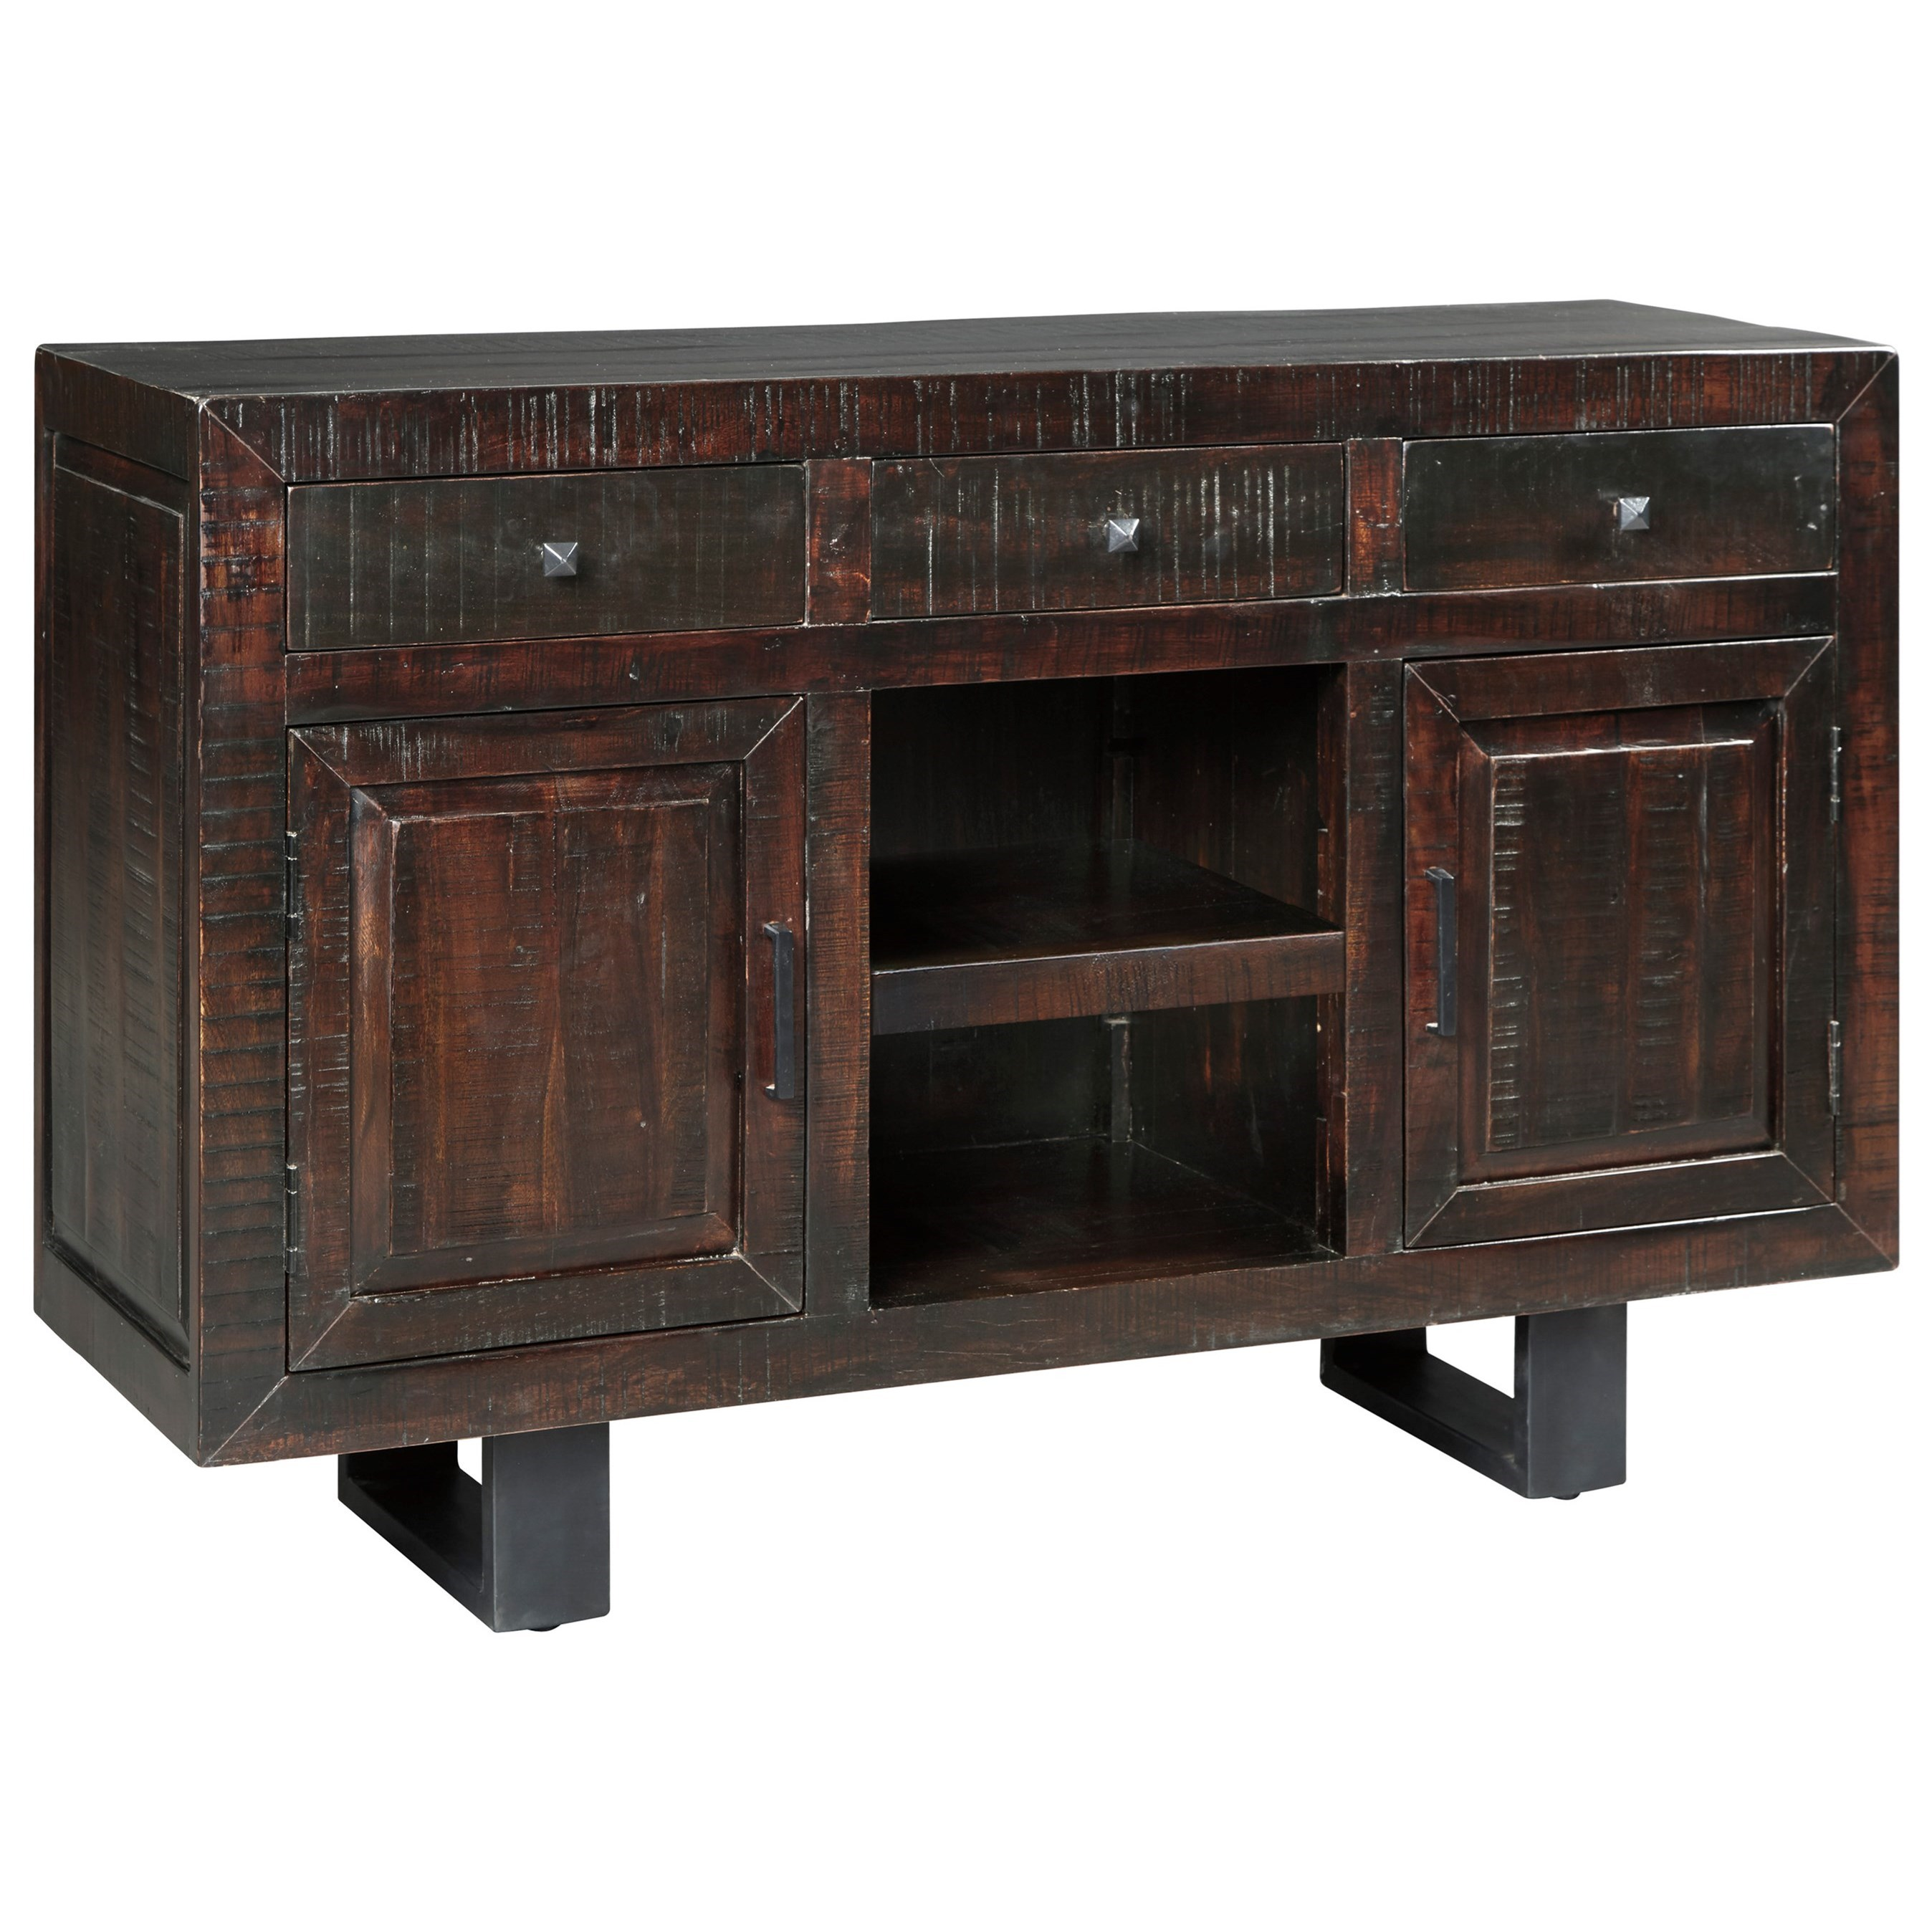 Modern Rustic Dining Room Server With Metal Sled Style Legs